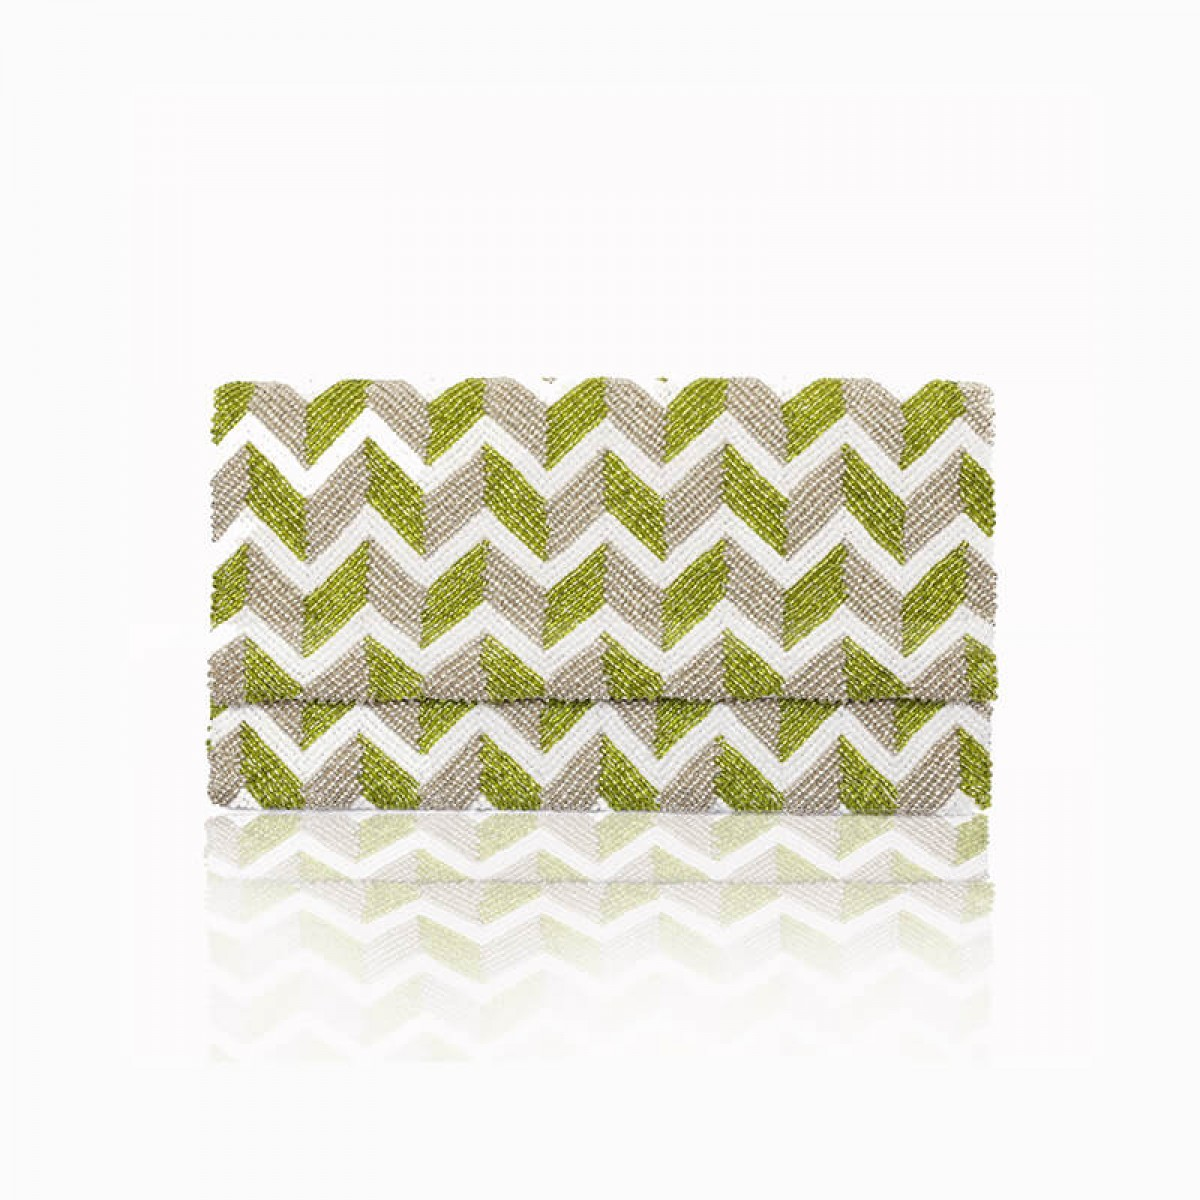 Beaded Wave Evening Clutch Bag - Green